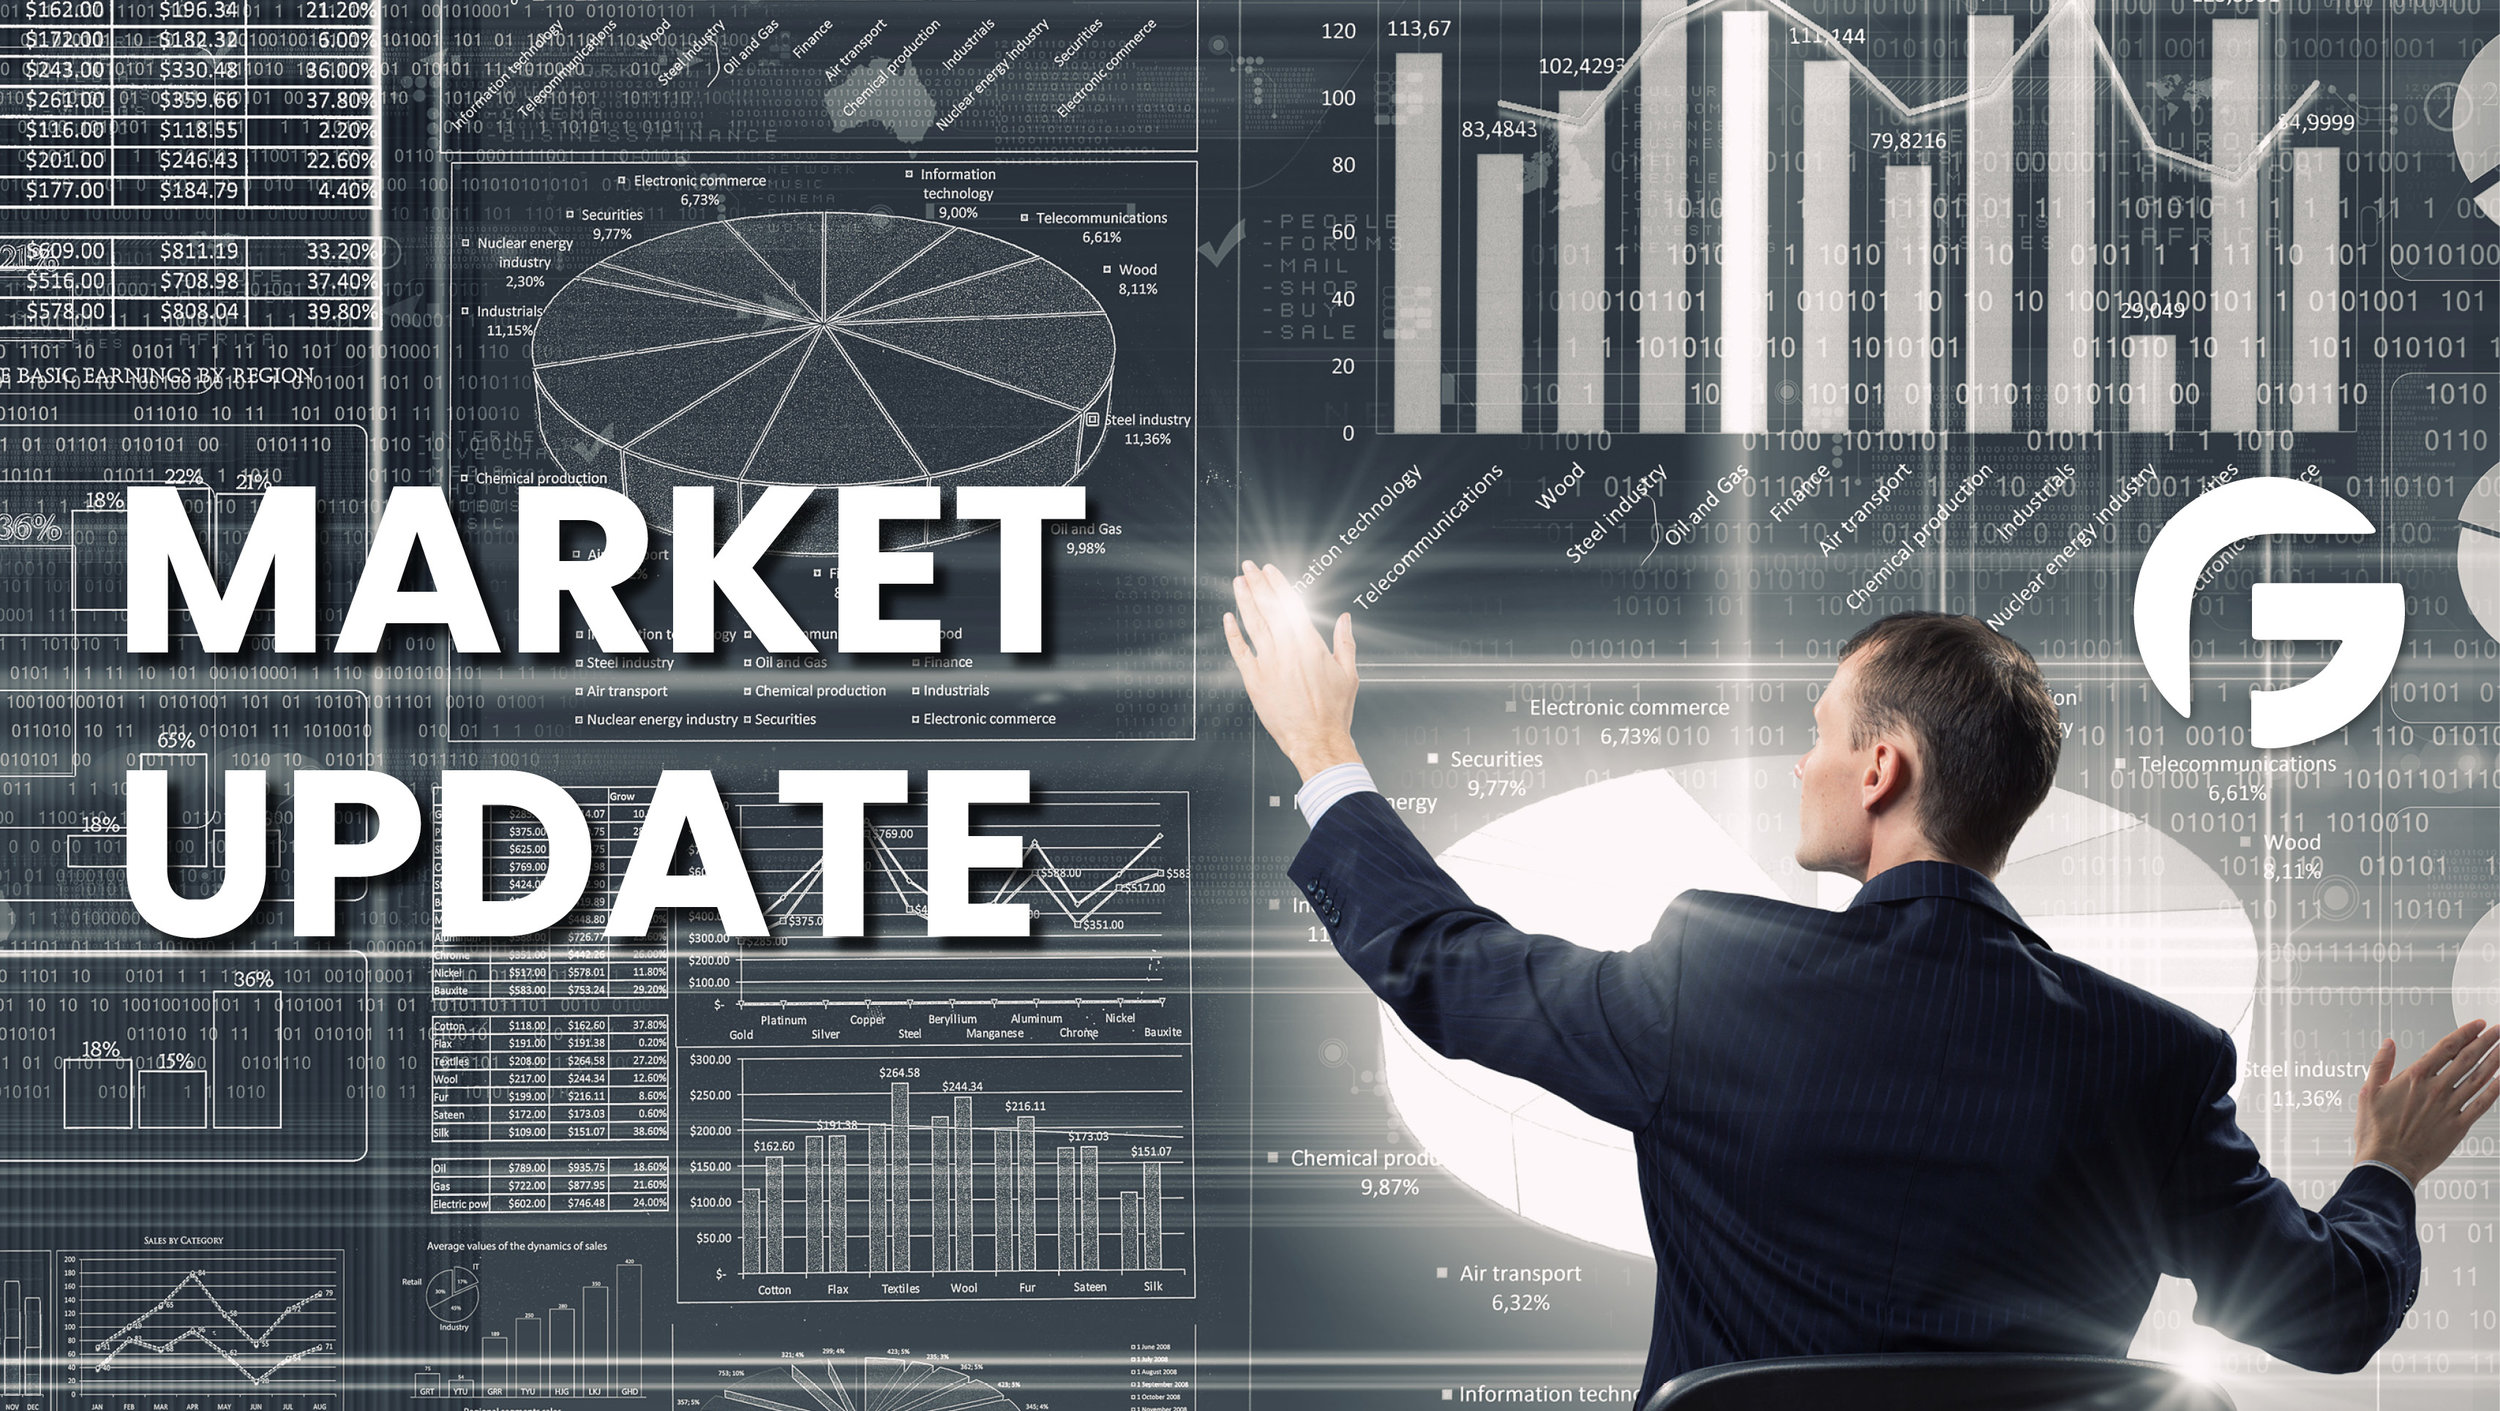 Market Update August 2019 Mortgage Rates